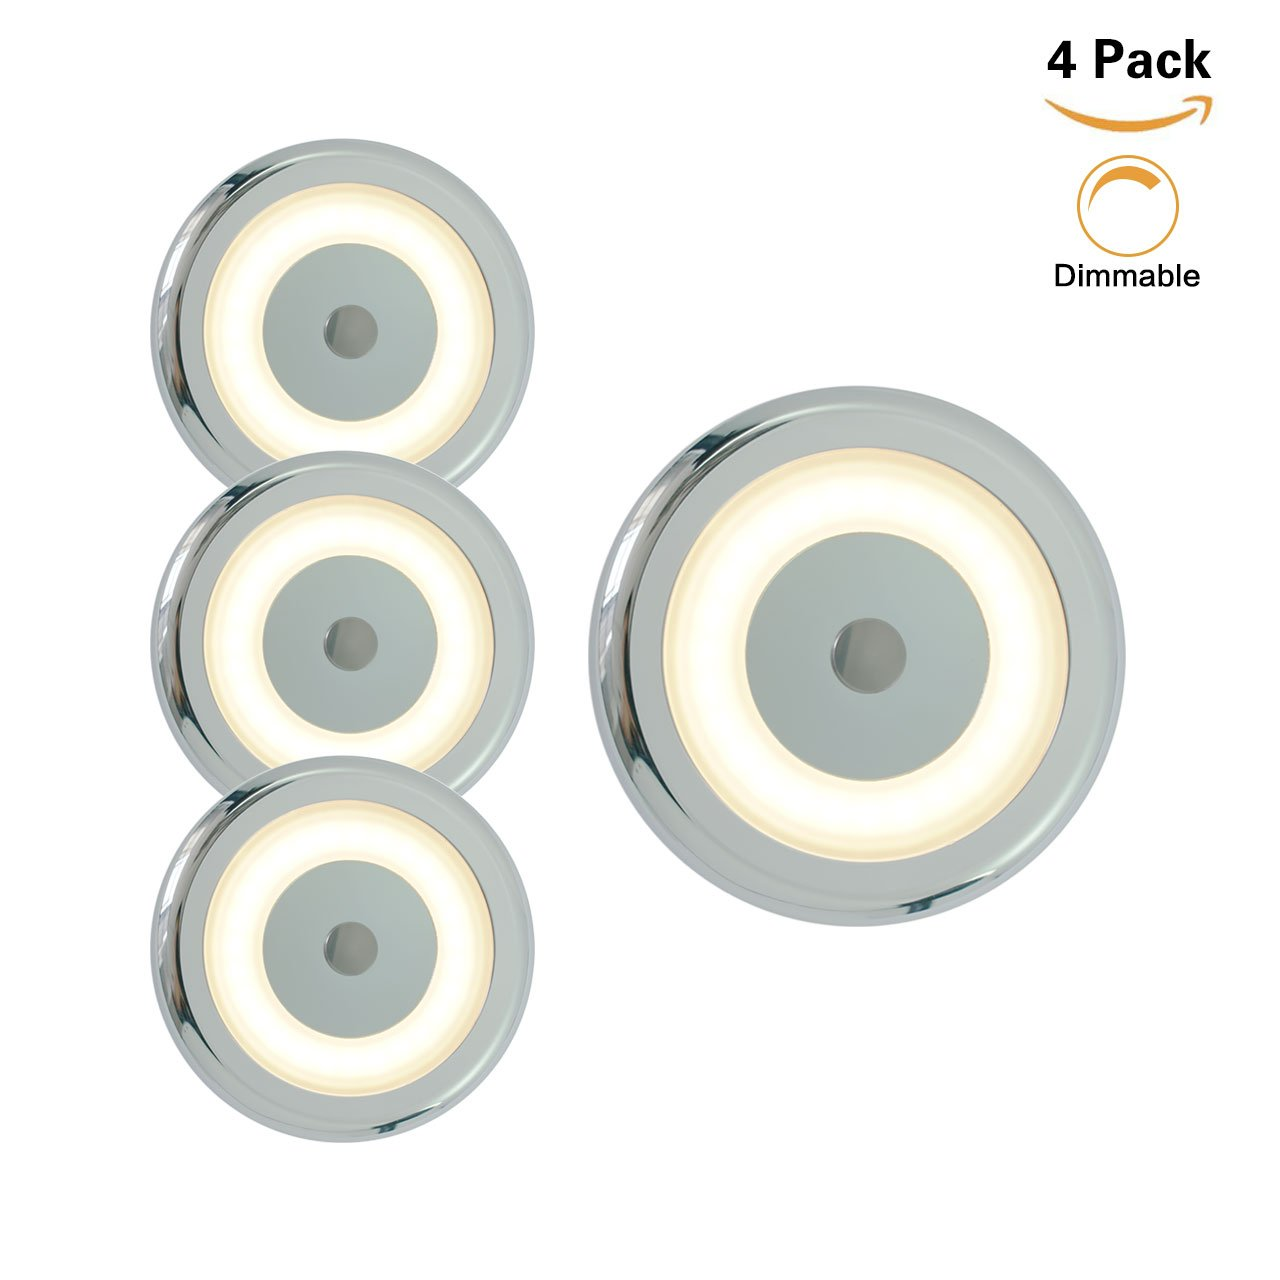 12V RV LED Touch Boat Ceiling Light - 3W Dimmer 2800K Soft White Memory Marine Lamp Annular Frosted Lens Stepless Dimmable, Surface Mount, Hidden Fastener Design, Stainless Steel Screw, Pack of 6 Genuine Marine